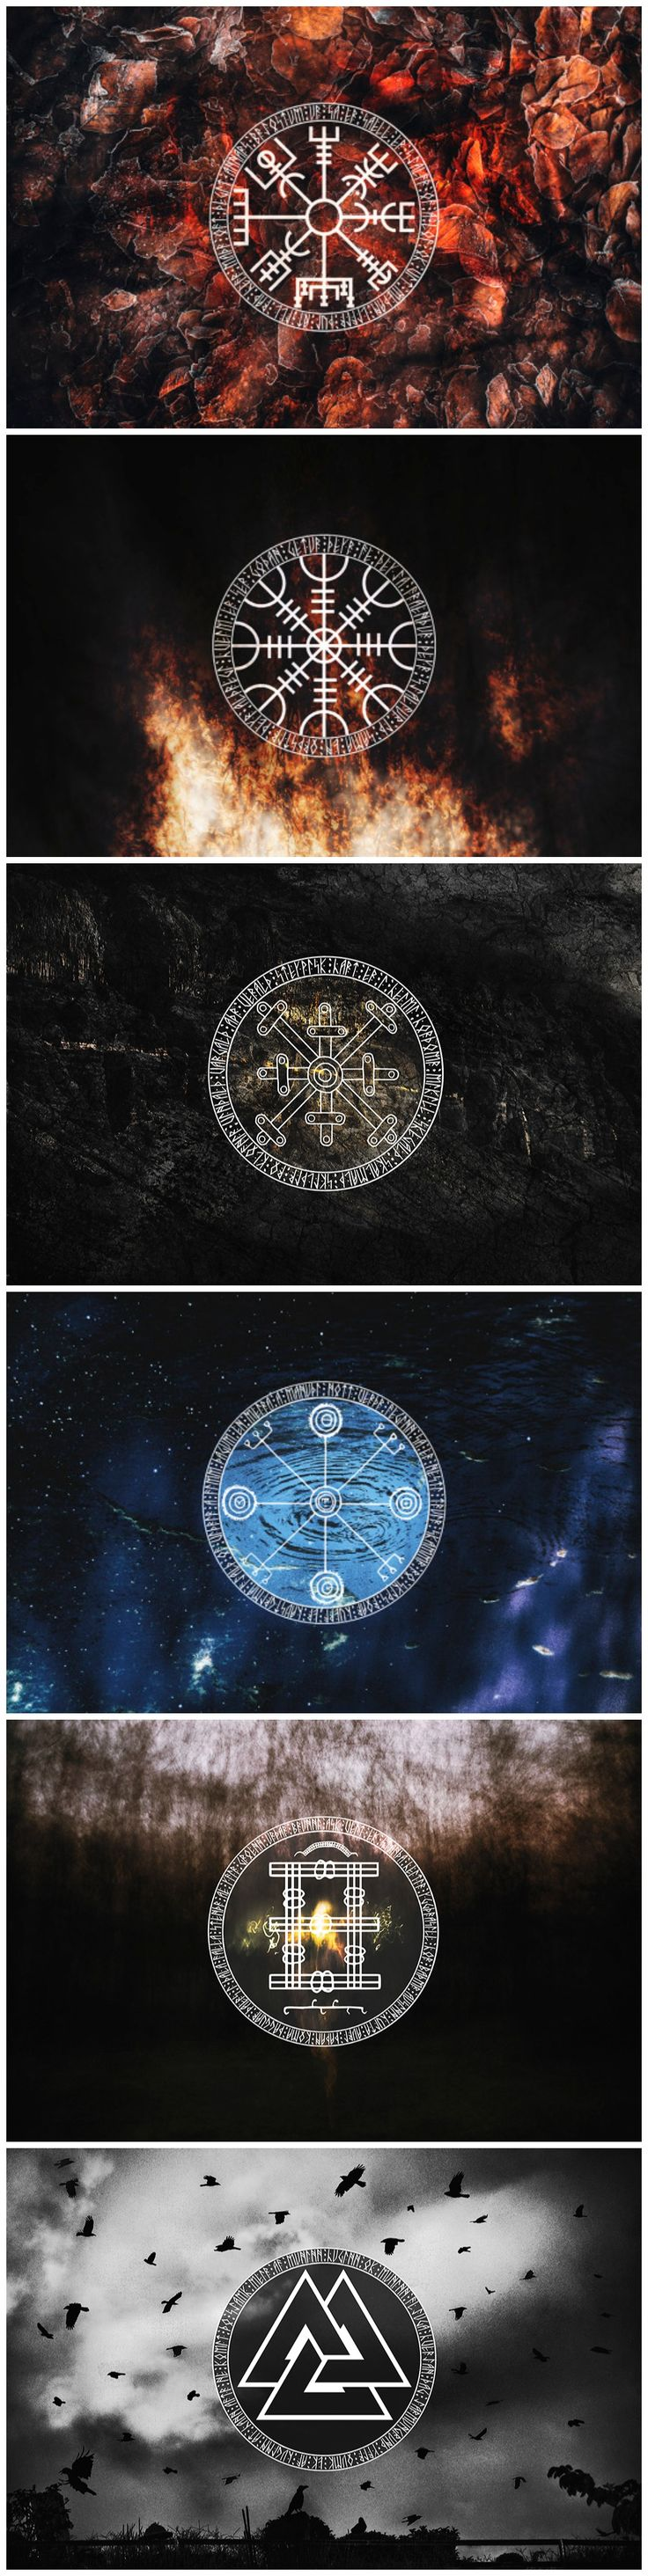 The complete Icelandic staves symbol series. Each artwork is representing an element. They are presented here in the following order : fire, earth, metal, water, wood and air. The symbols are accompanied by stanzas of the Hávamál or Völuspá, written in runes.